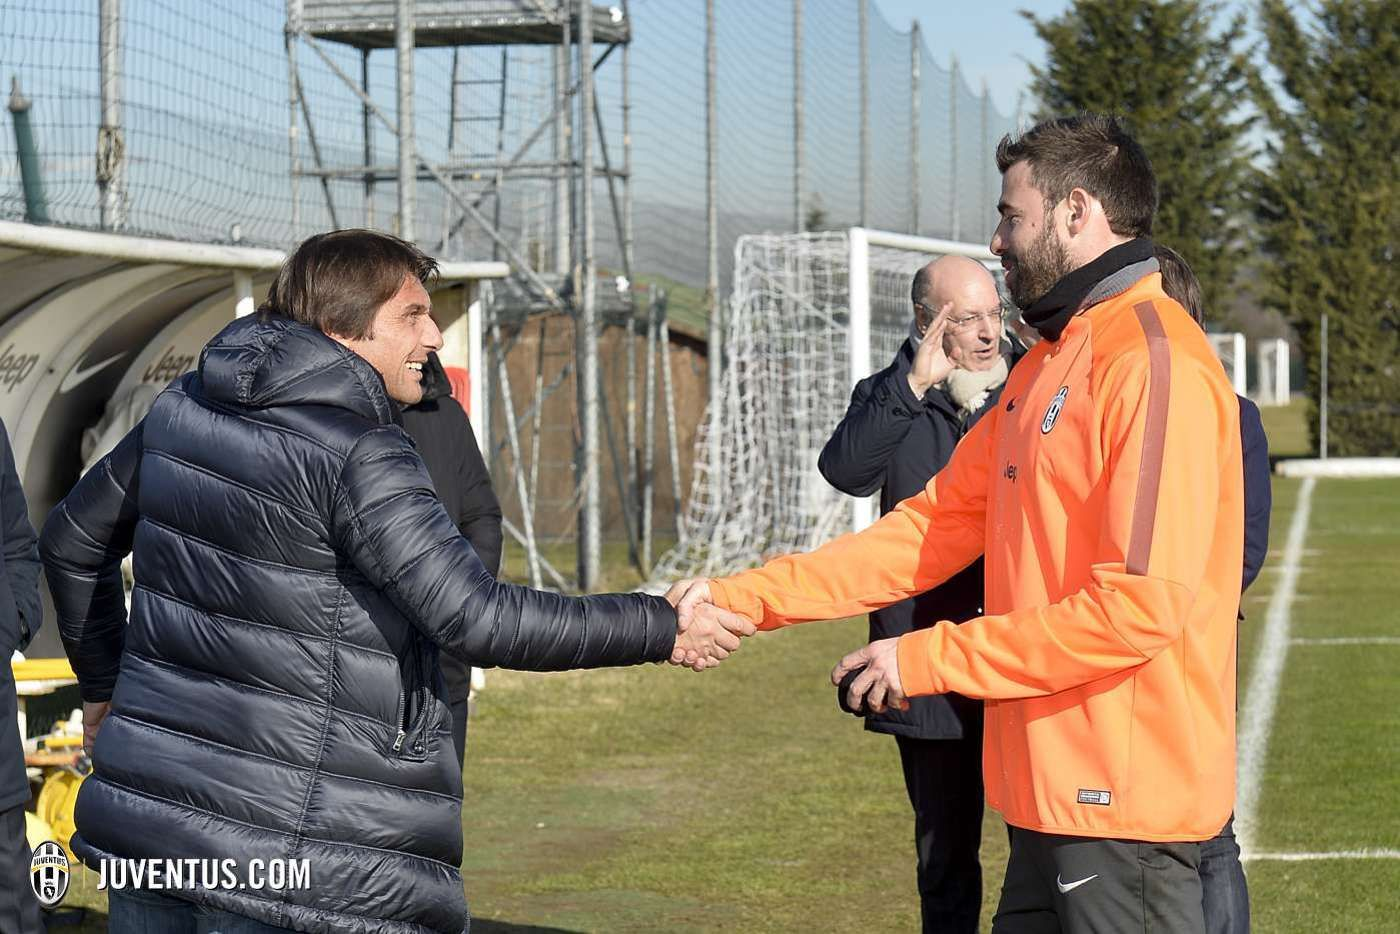 Il ct Conte assiste all'allenamento - Italy coach Conte watches training - Juventus.com